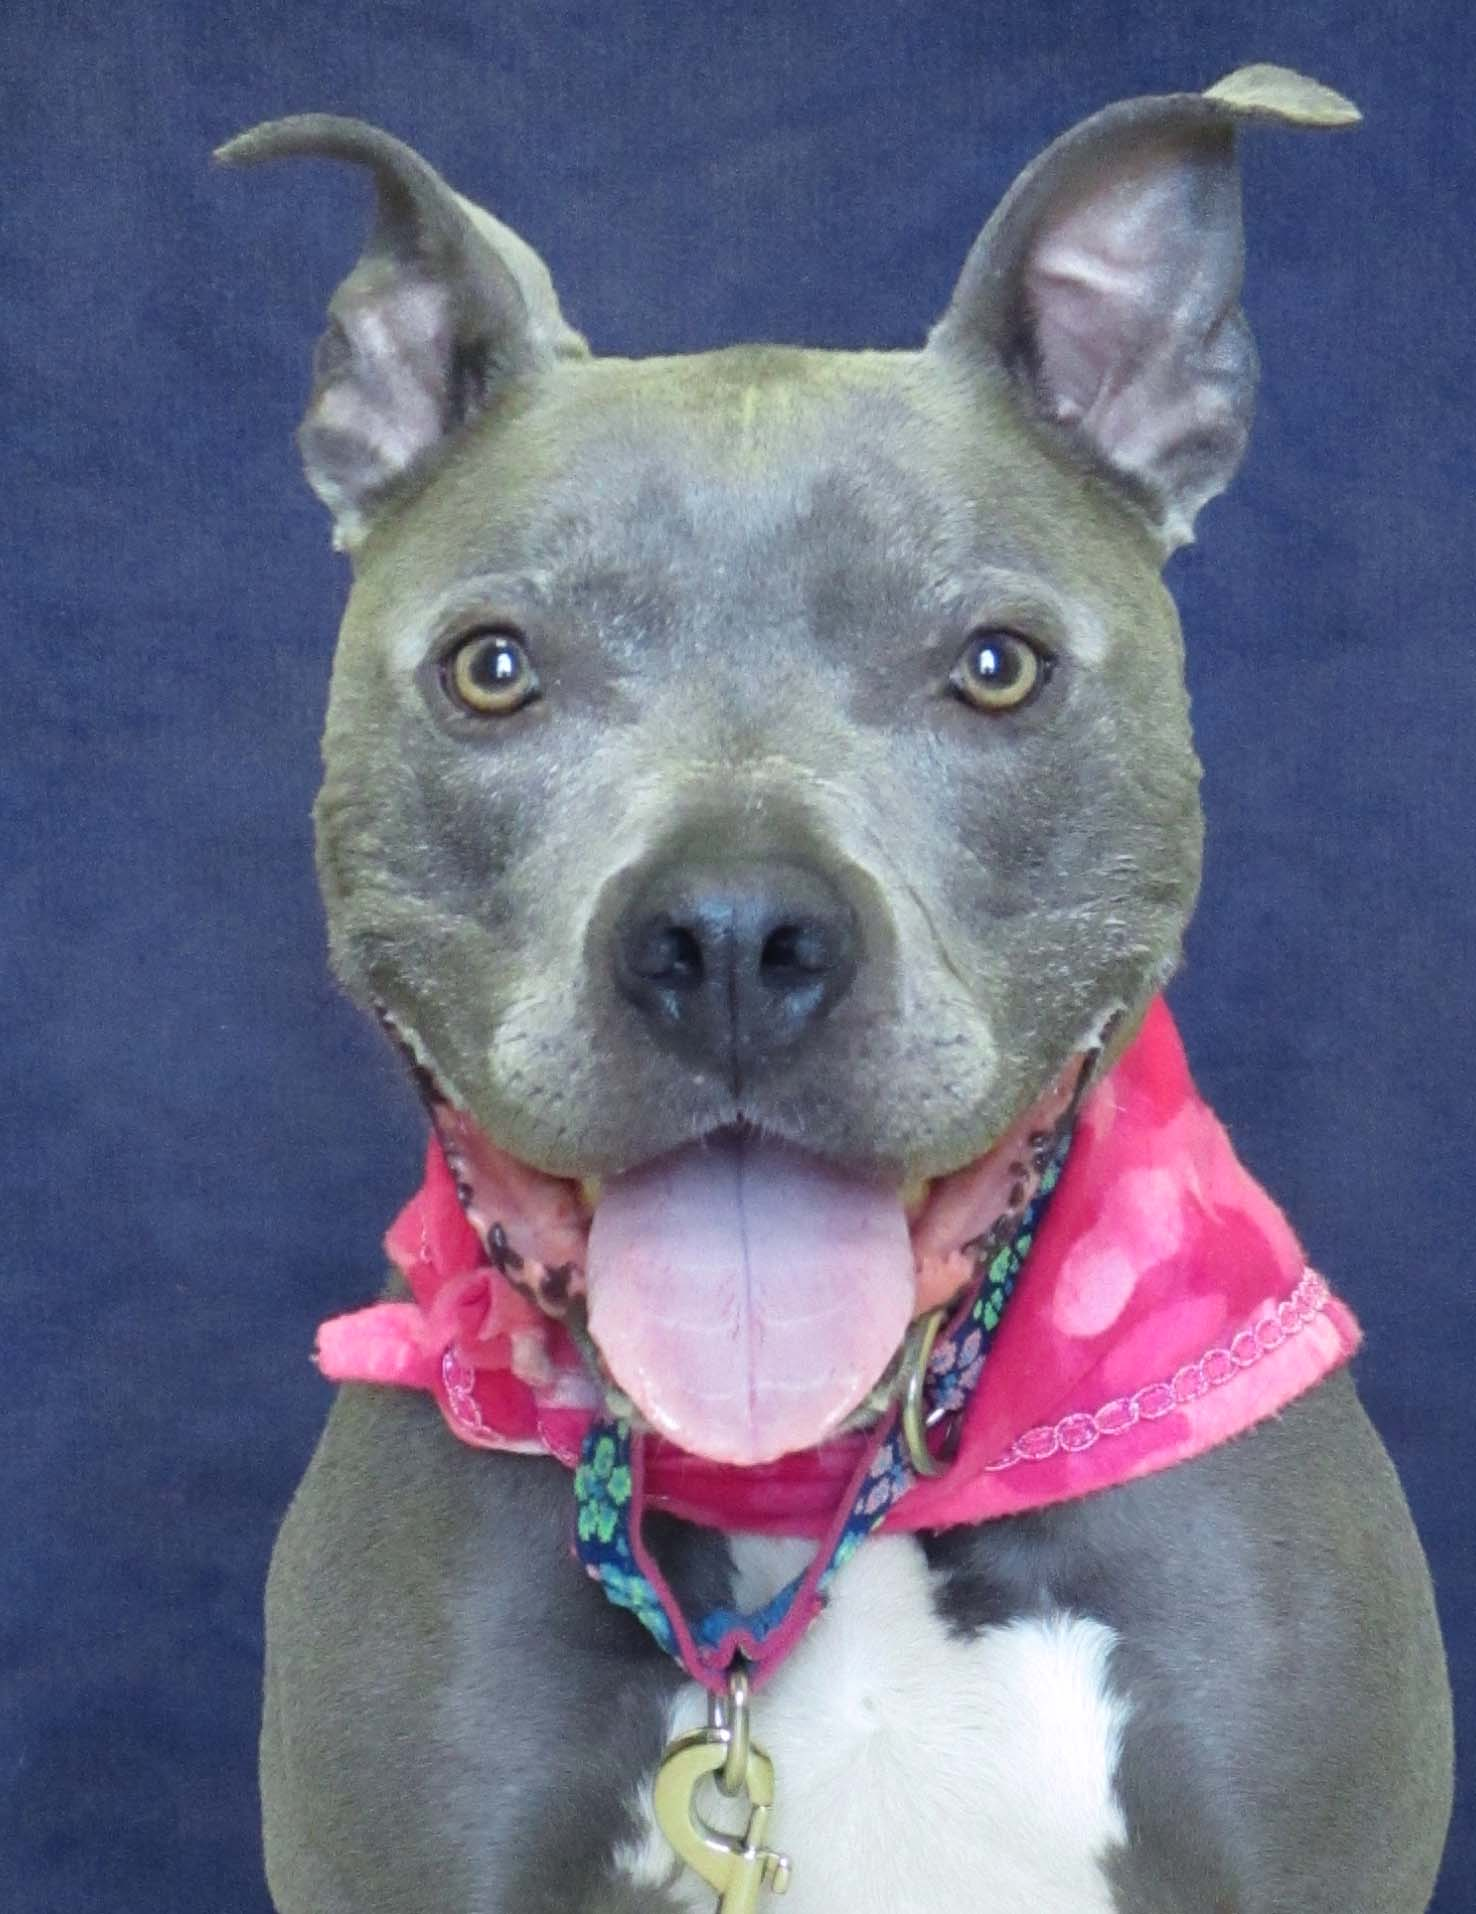 Gotti is a 7 years old Pitbull Terrier. She has the cutest smile that will make your day no matter what. We are recommending children 10 and older due to her strength and her love of food. She may do best as the only pet. She loves playing with squeaky toys, and leaning into you for petting.